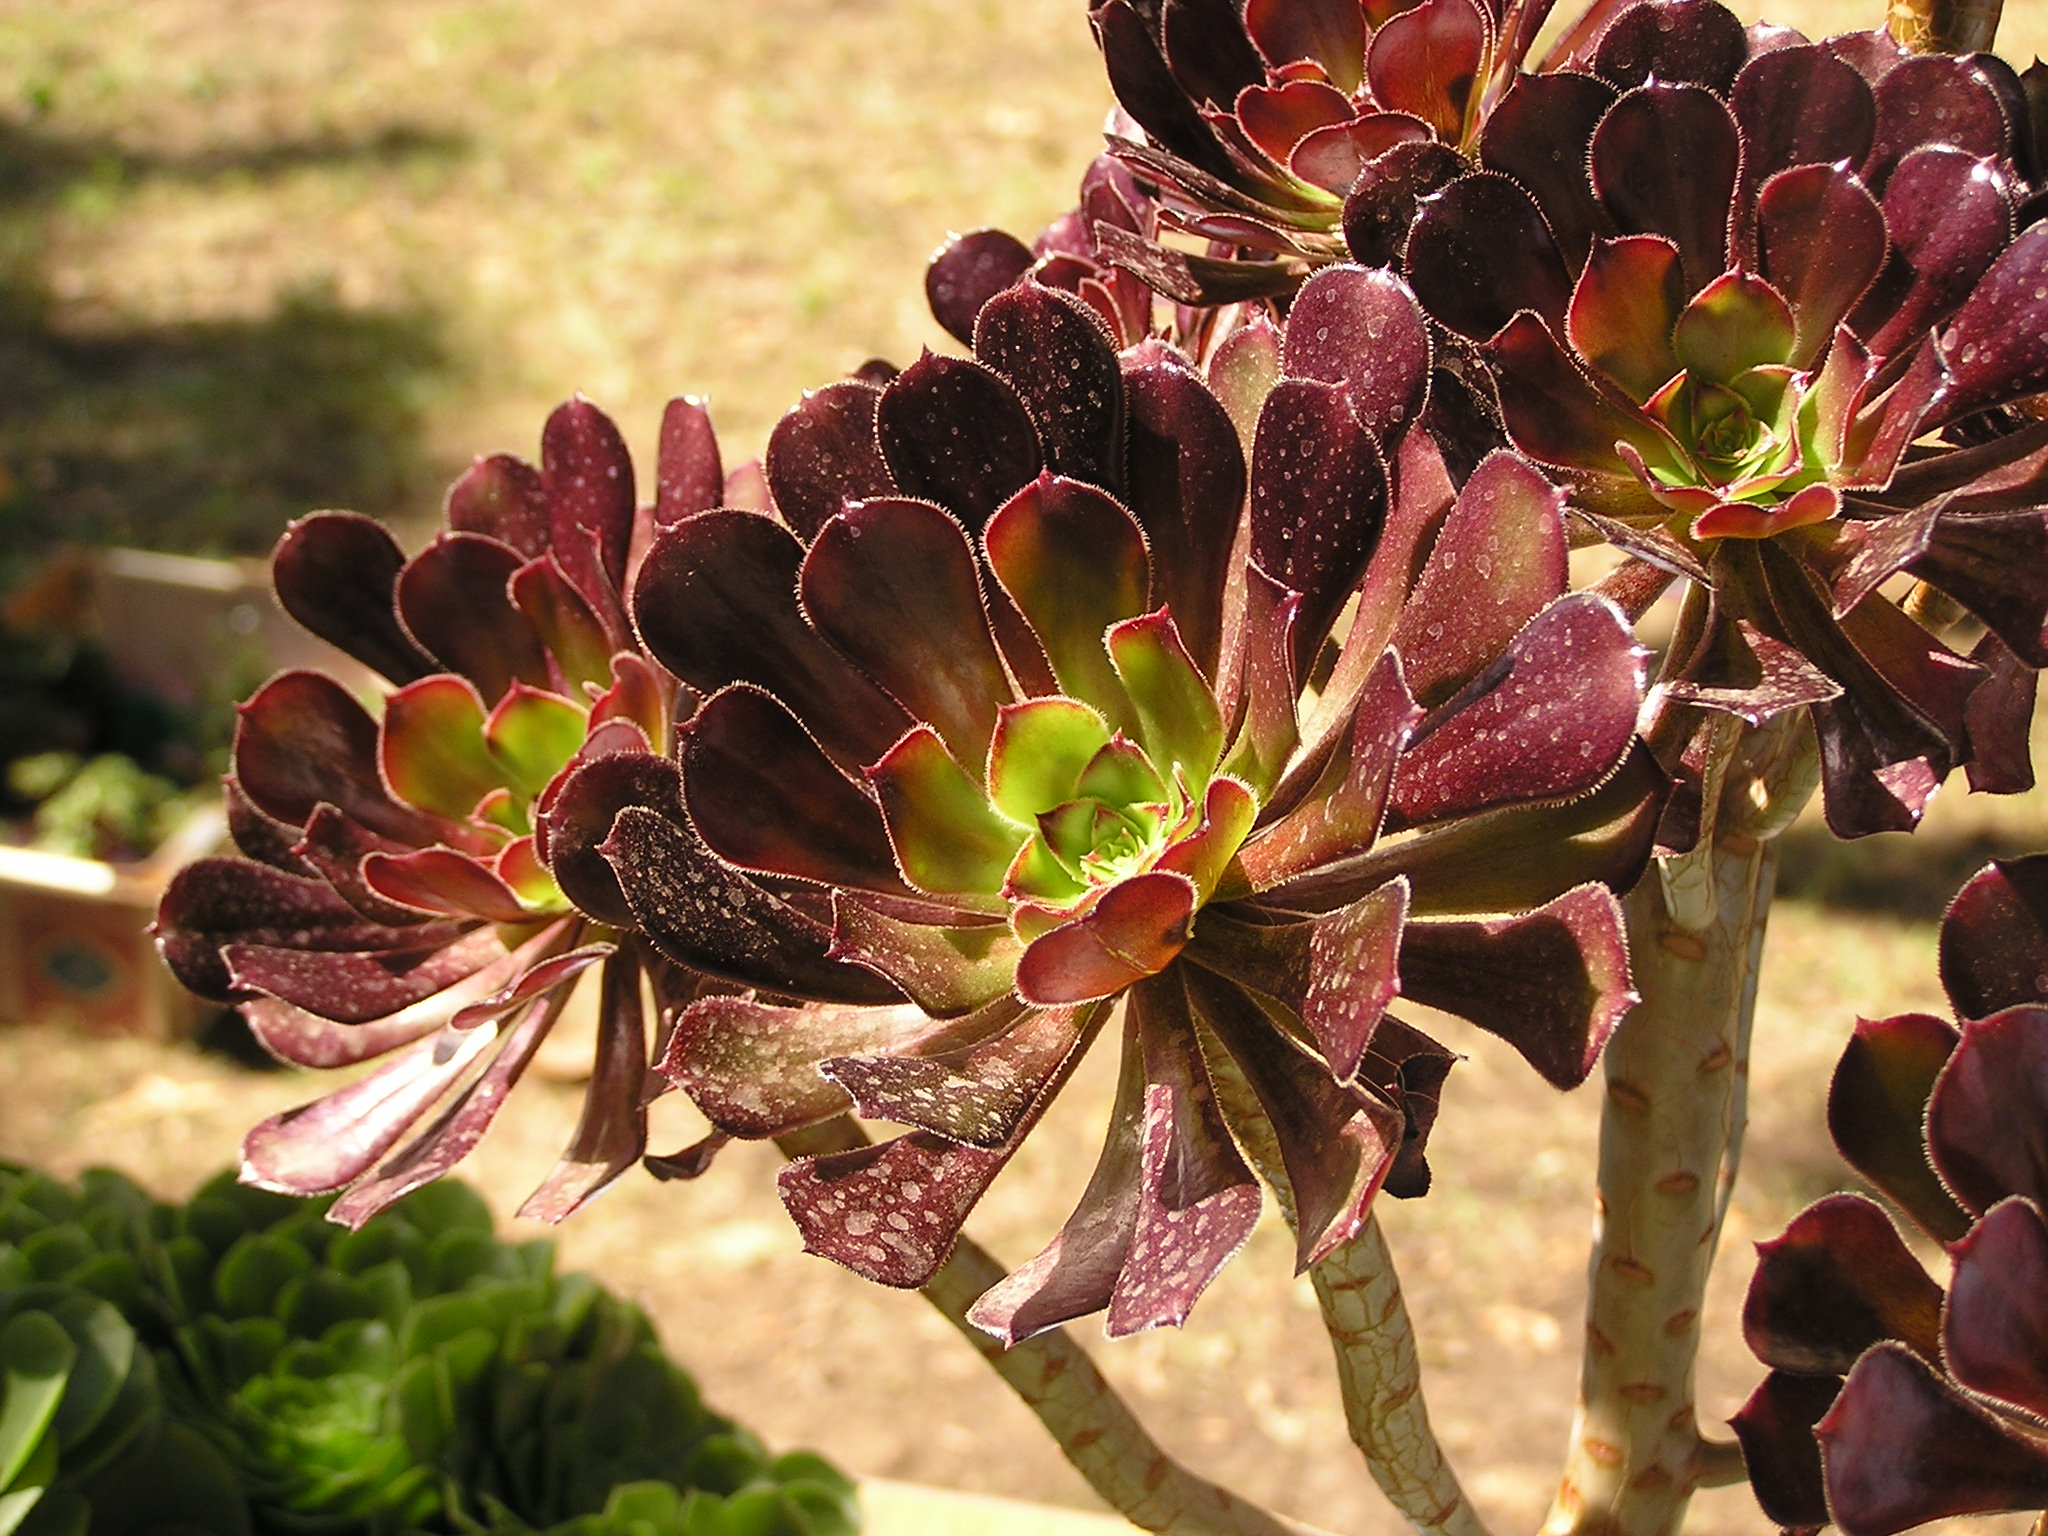 Aeonium arboreum on flowers exibition